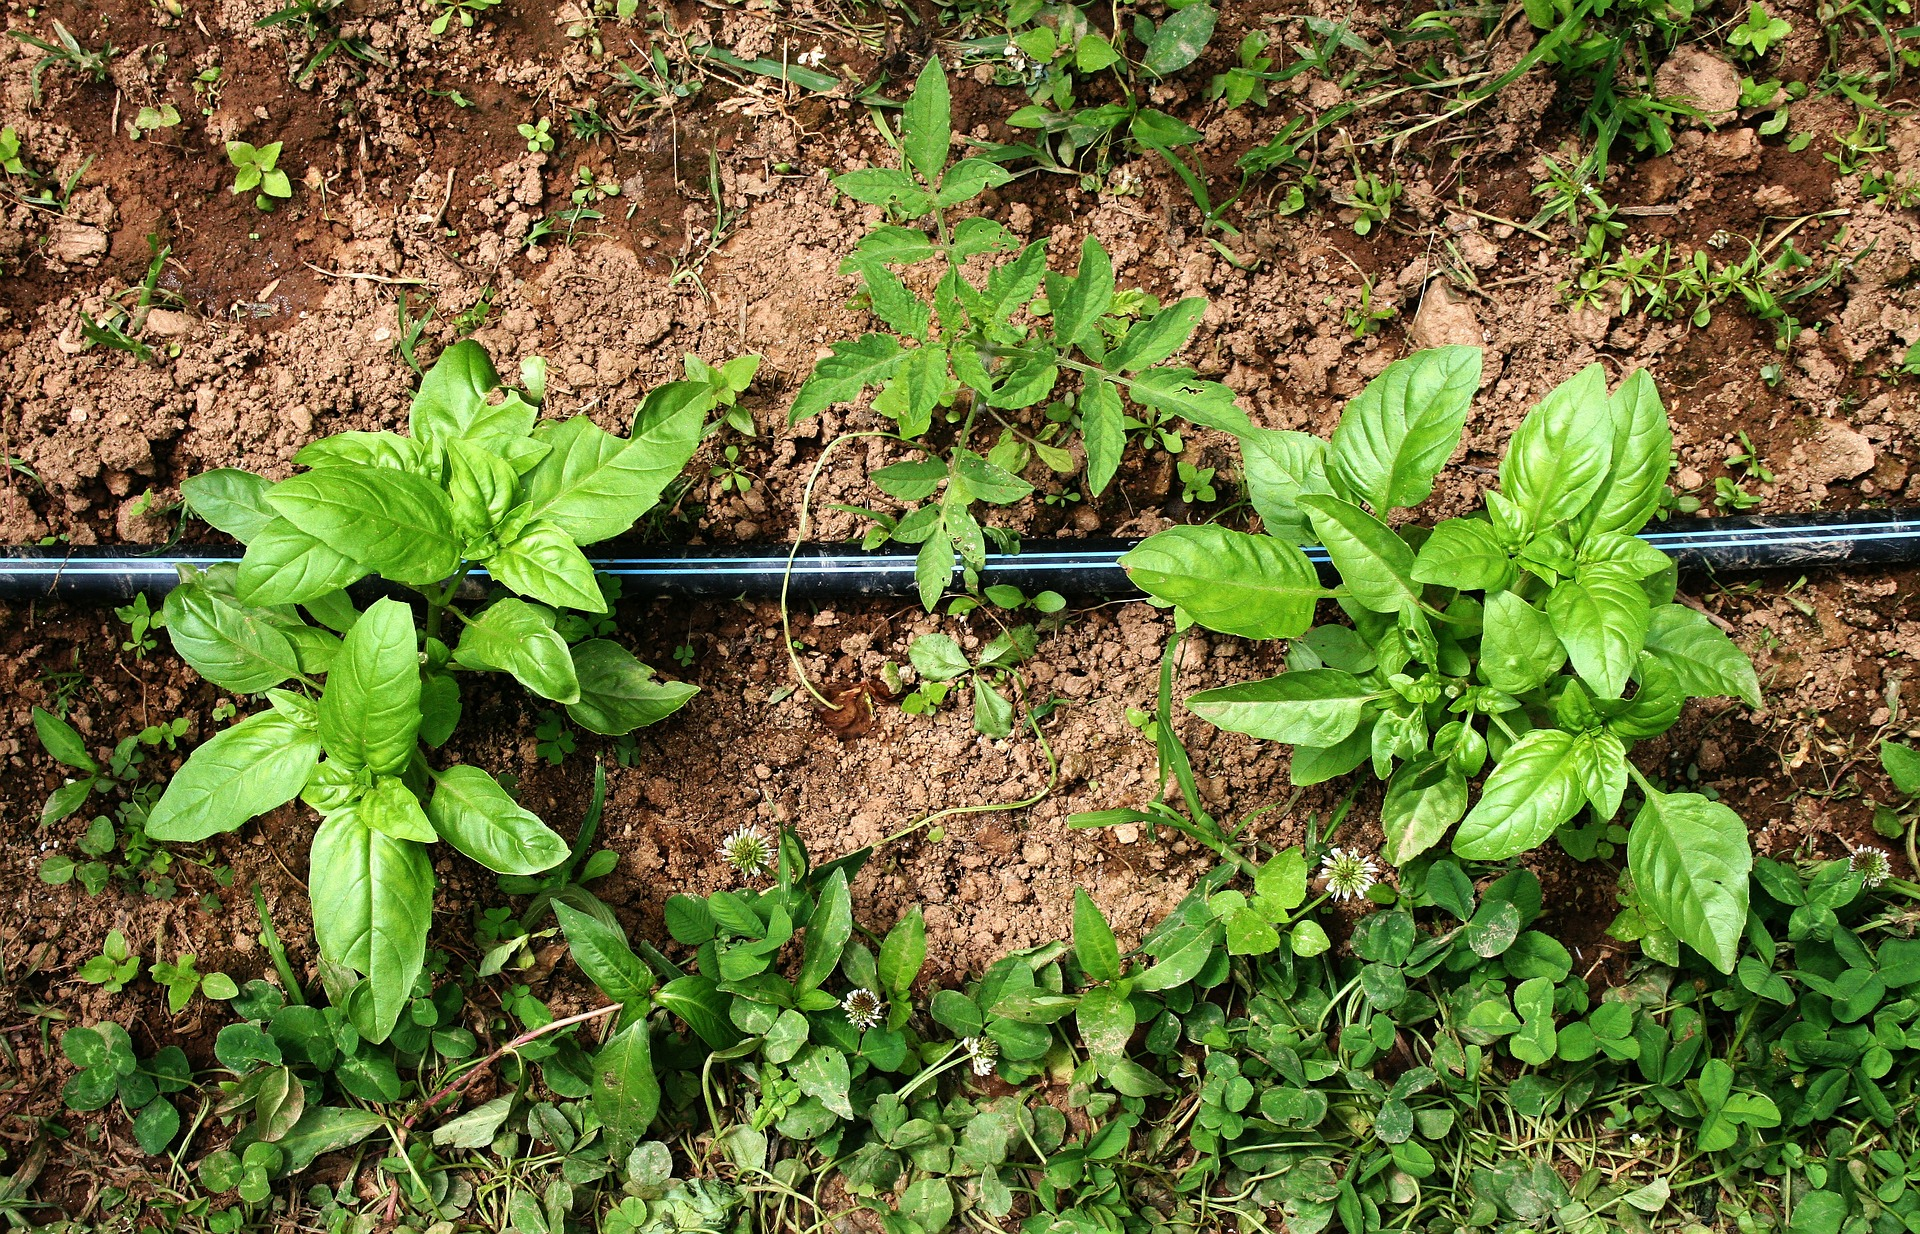 Basil with irrigation system | St. George News